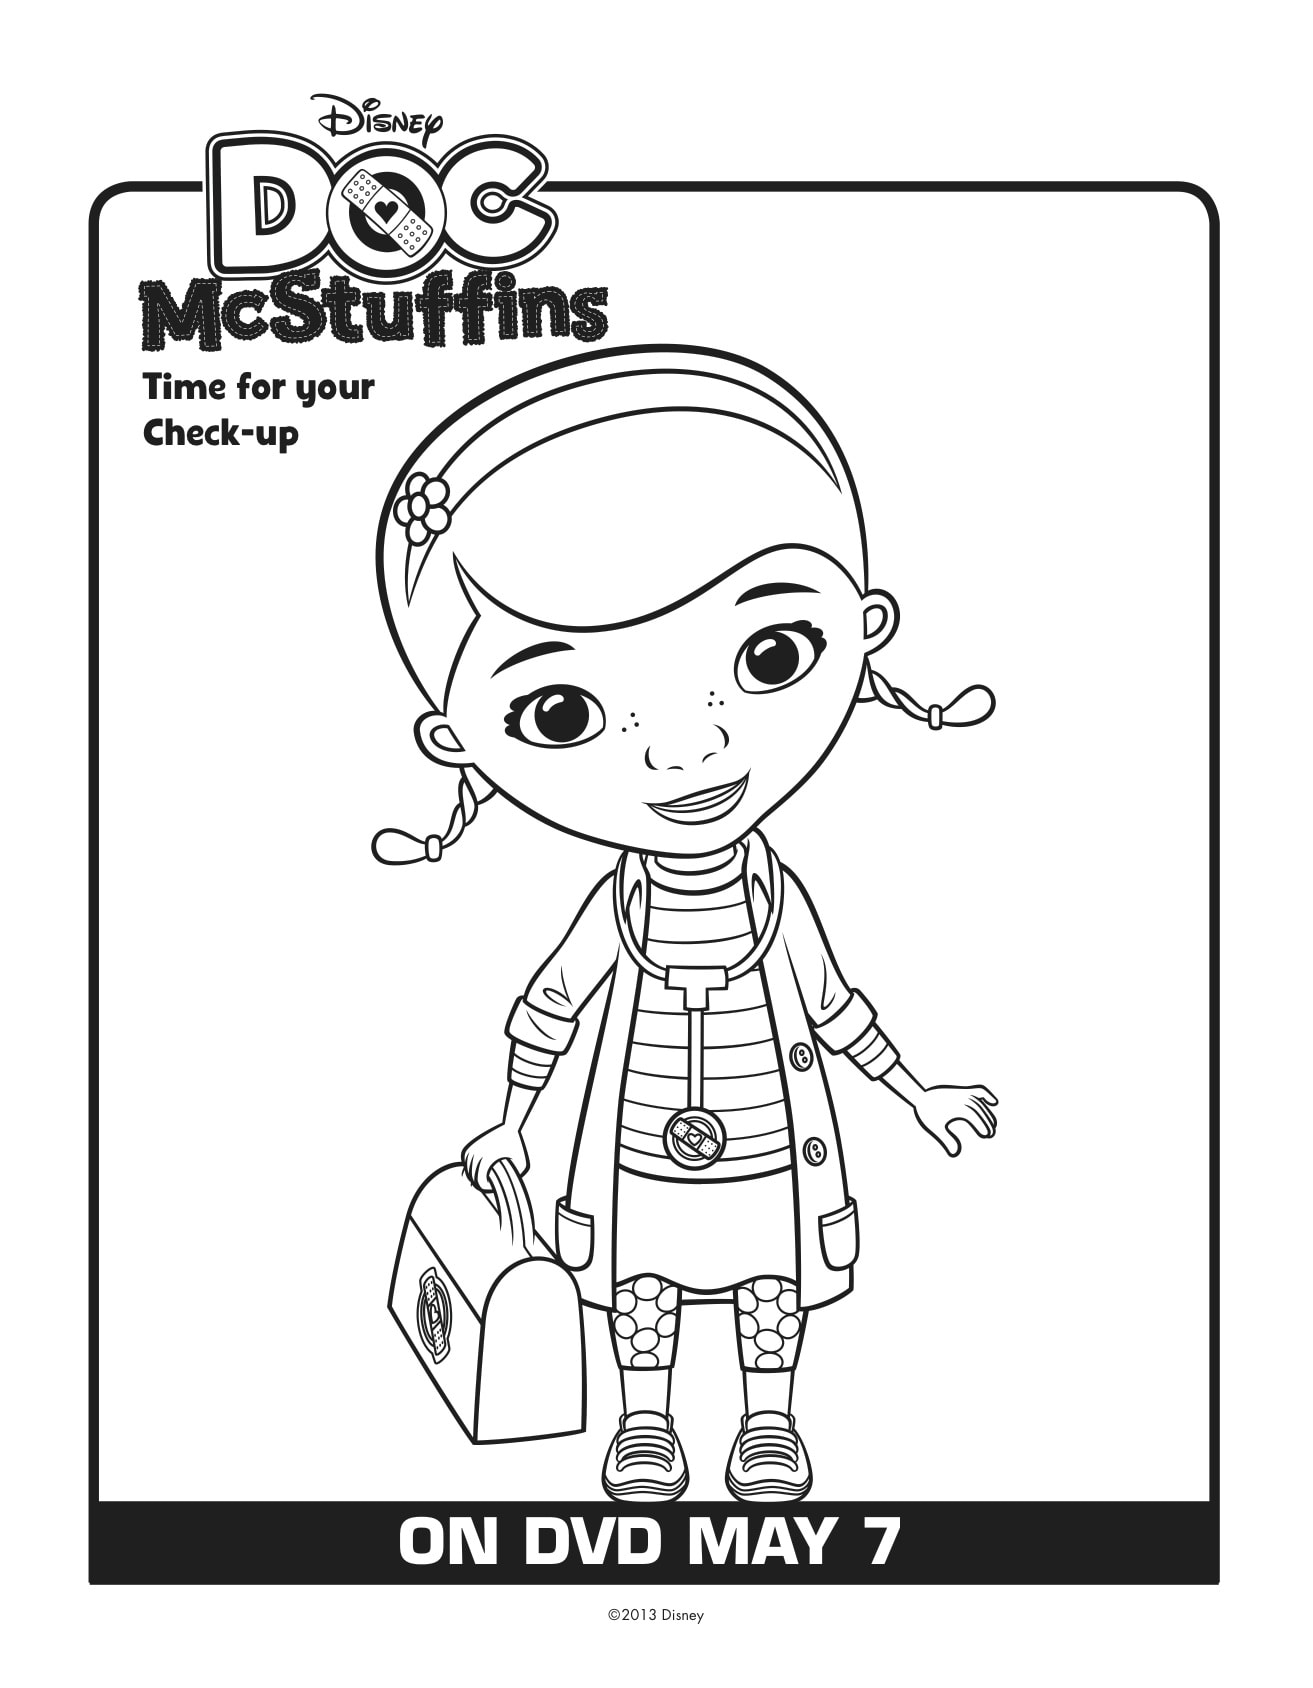 Fin fun coloring pages ~ Free Doc McStuffins Printables: Download Here - Lady and ...